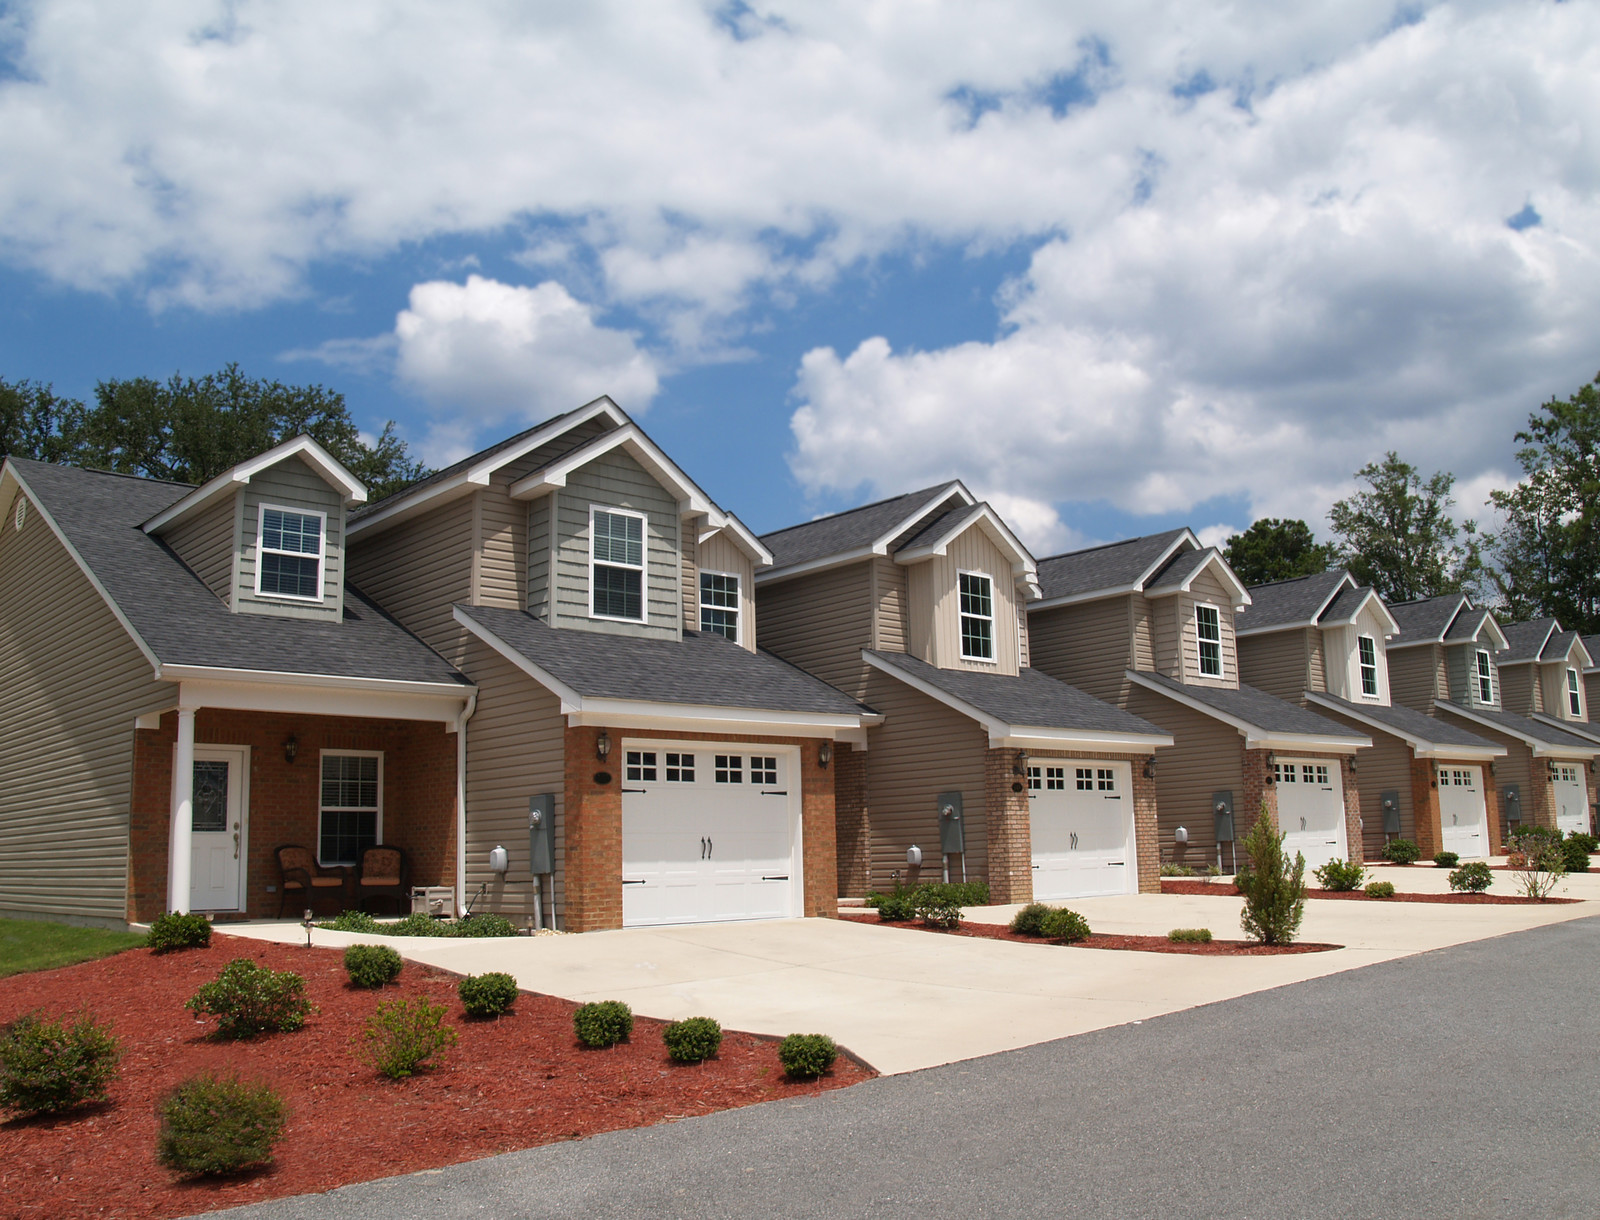 Two story townhomes in a retirement community with mulch in the front yard dotted with immature shrubs